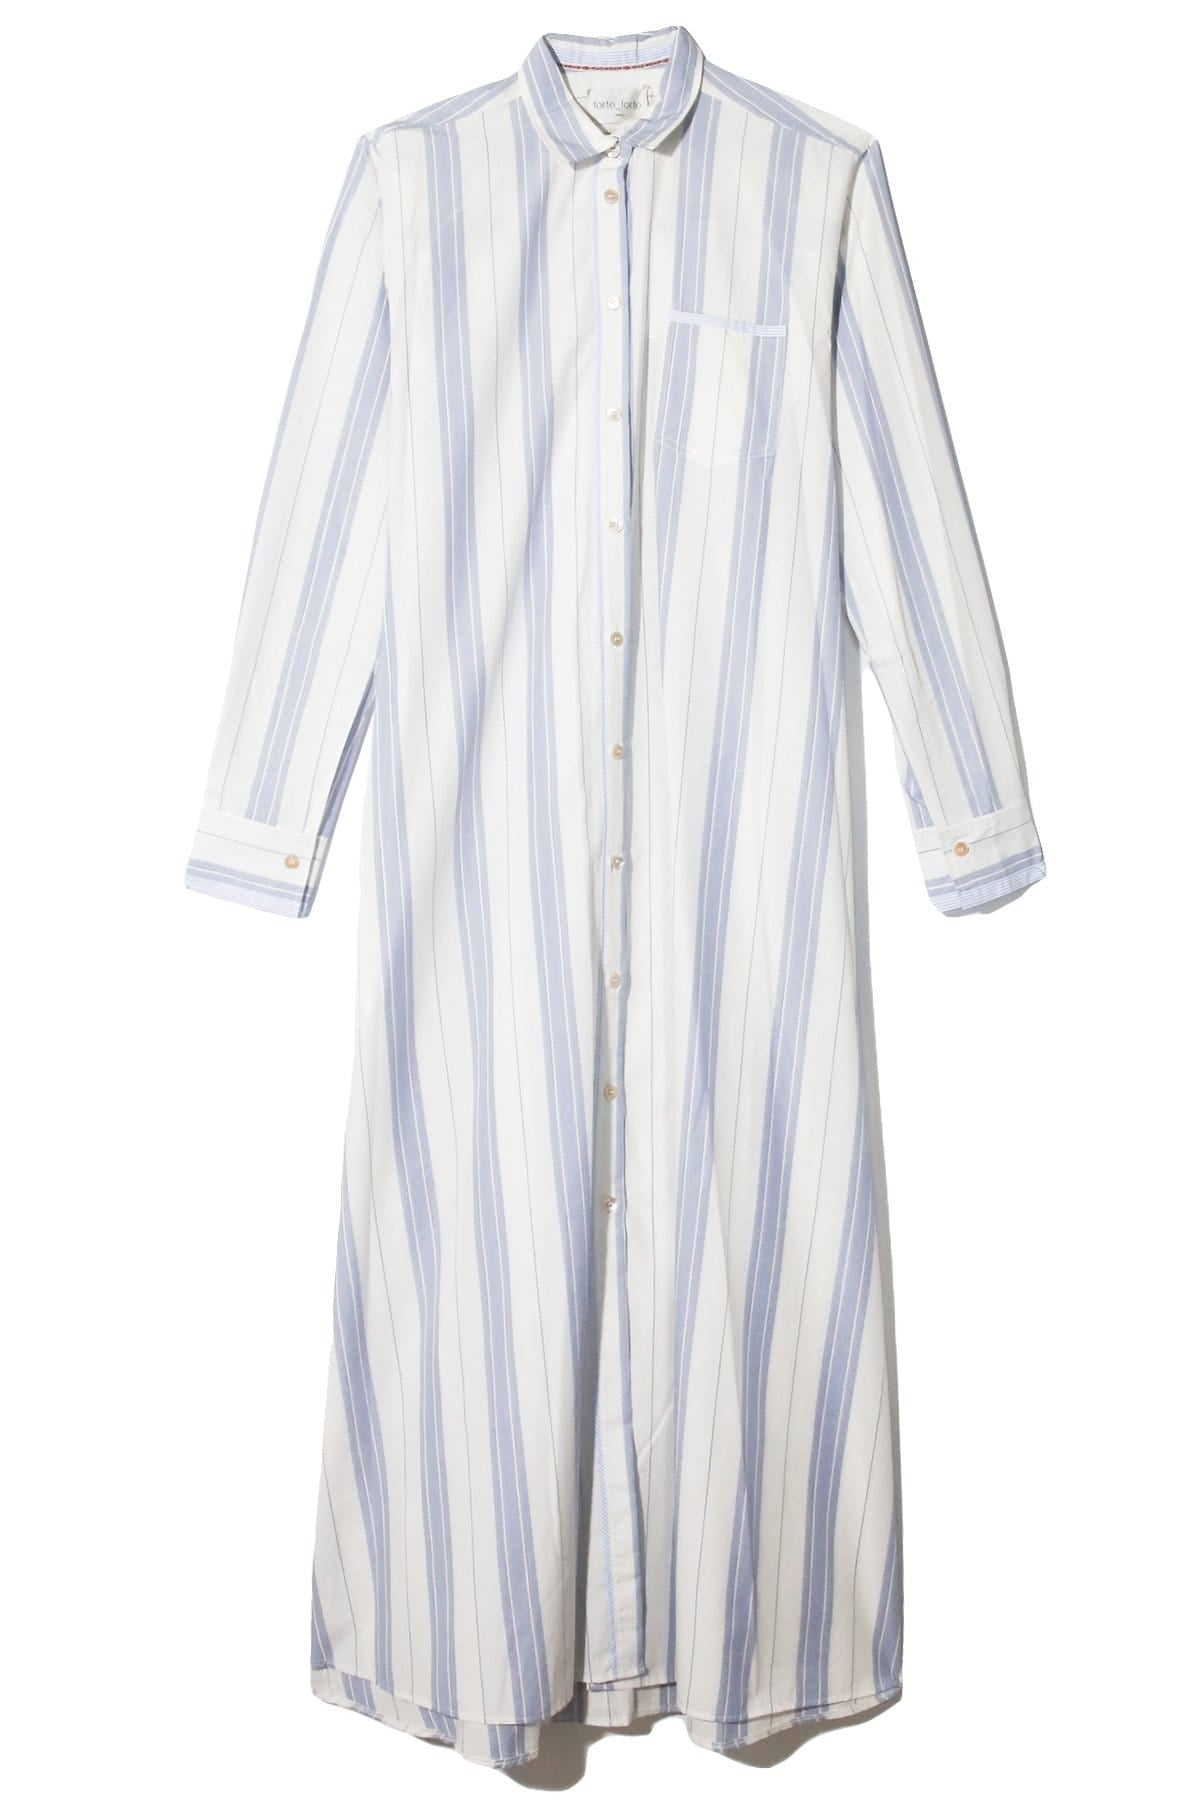 Collared Summer Striped Print Contrast Trim Pocketed Shirt Dress